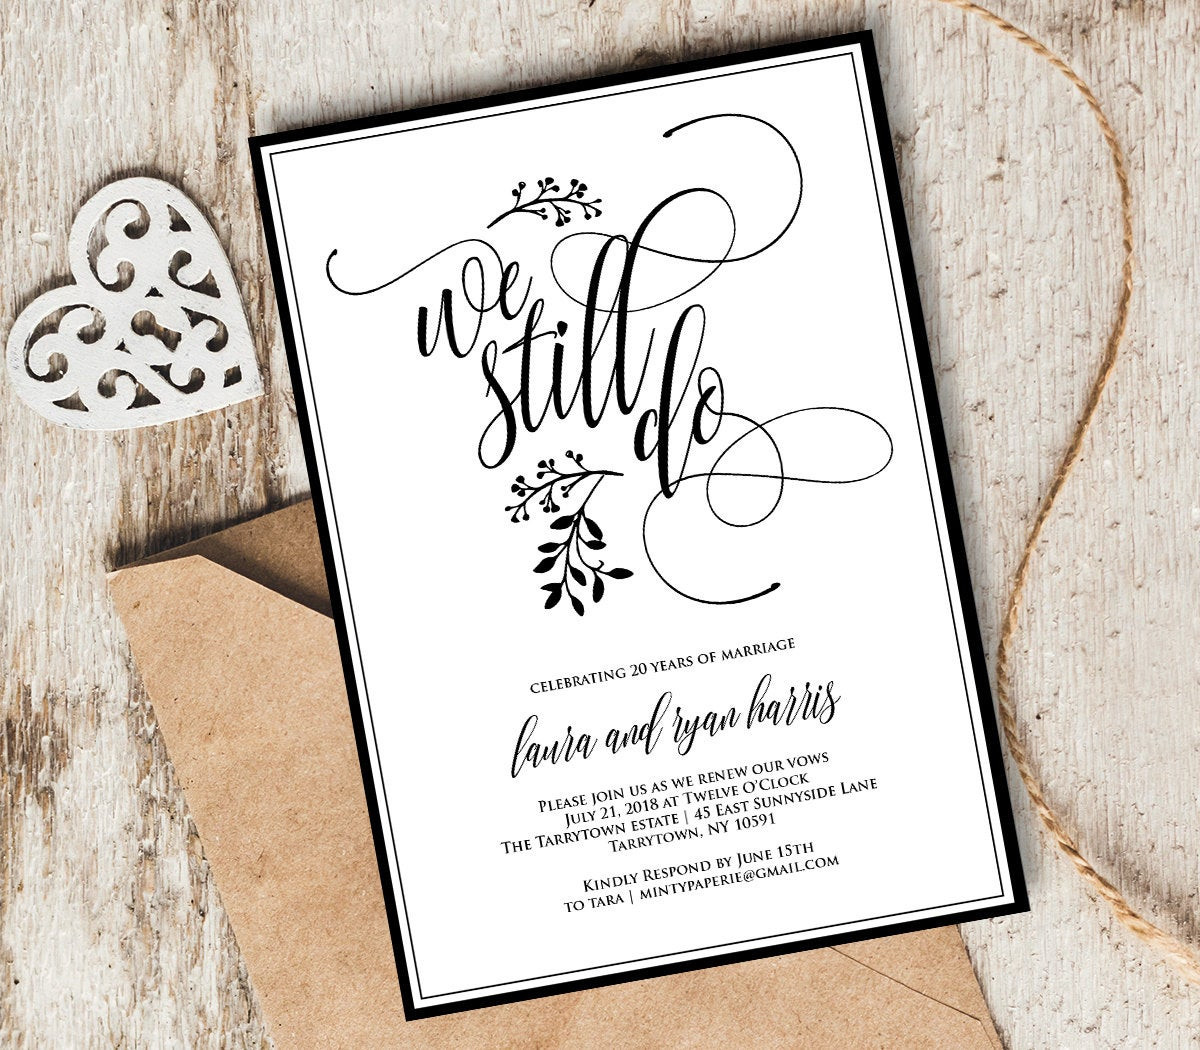 Renew Wedding Vows  Vow Renewal Invitation Template We Still Do Instant